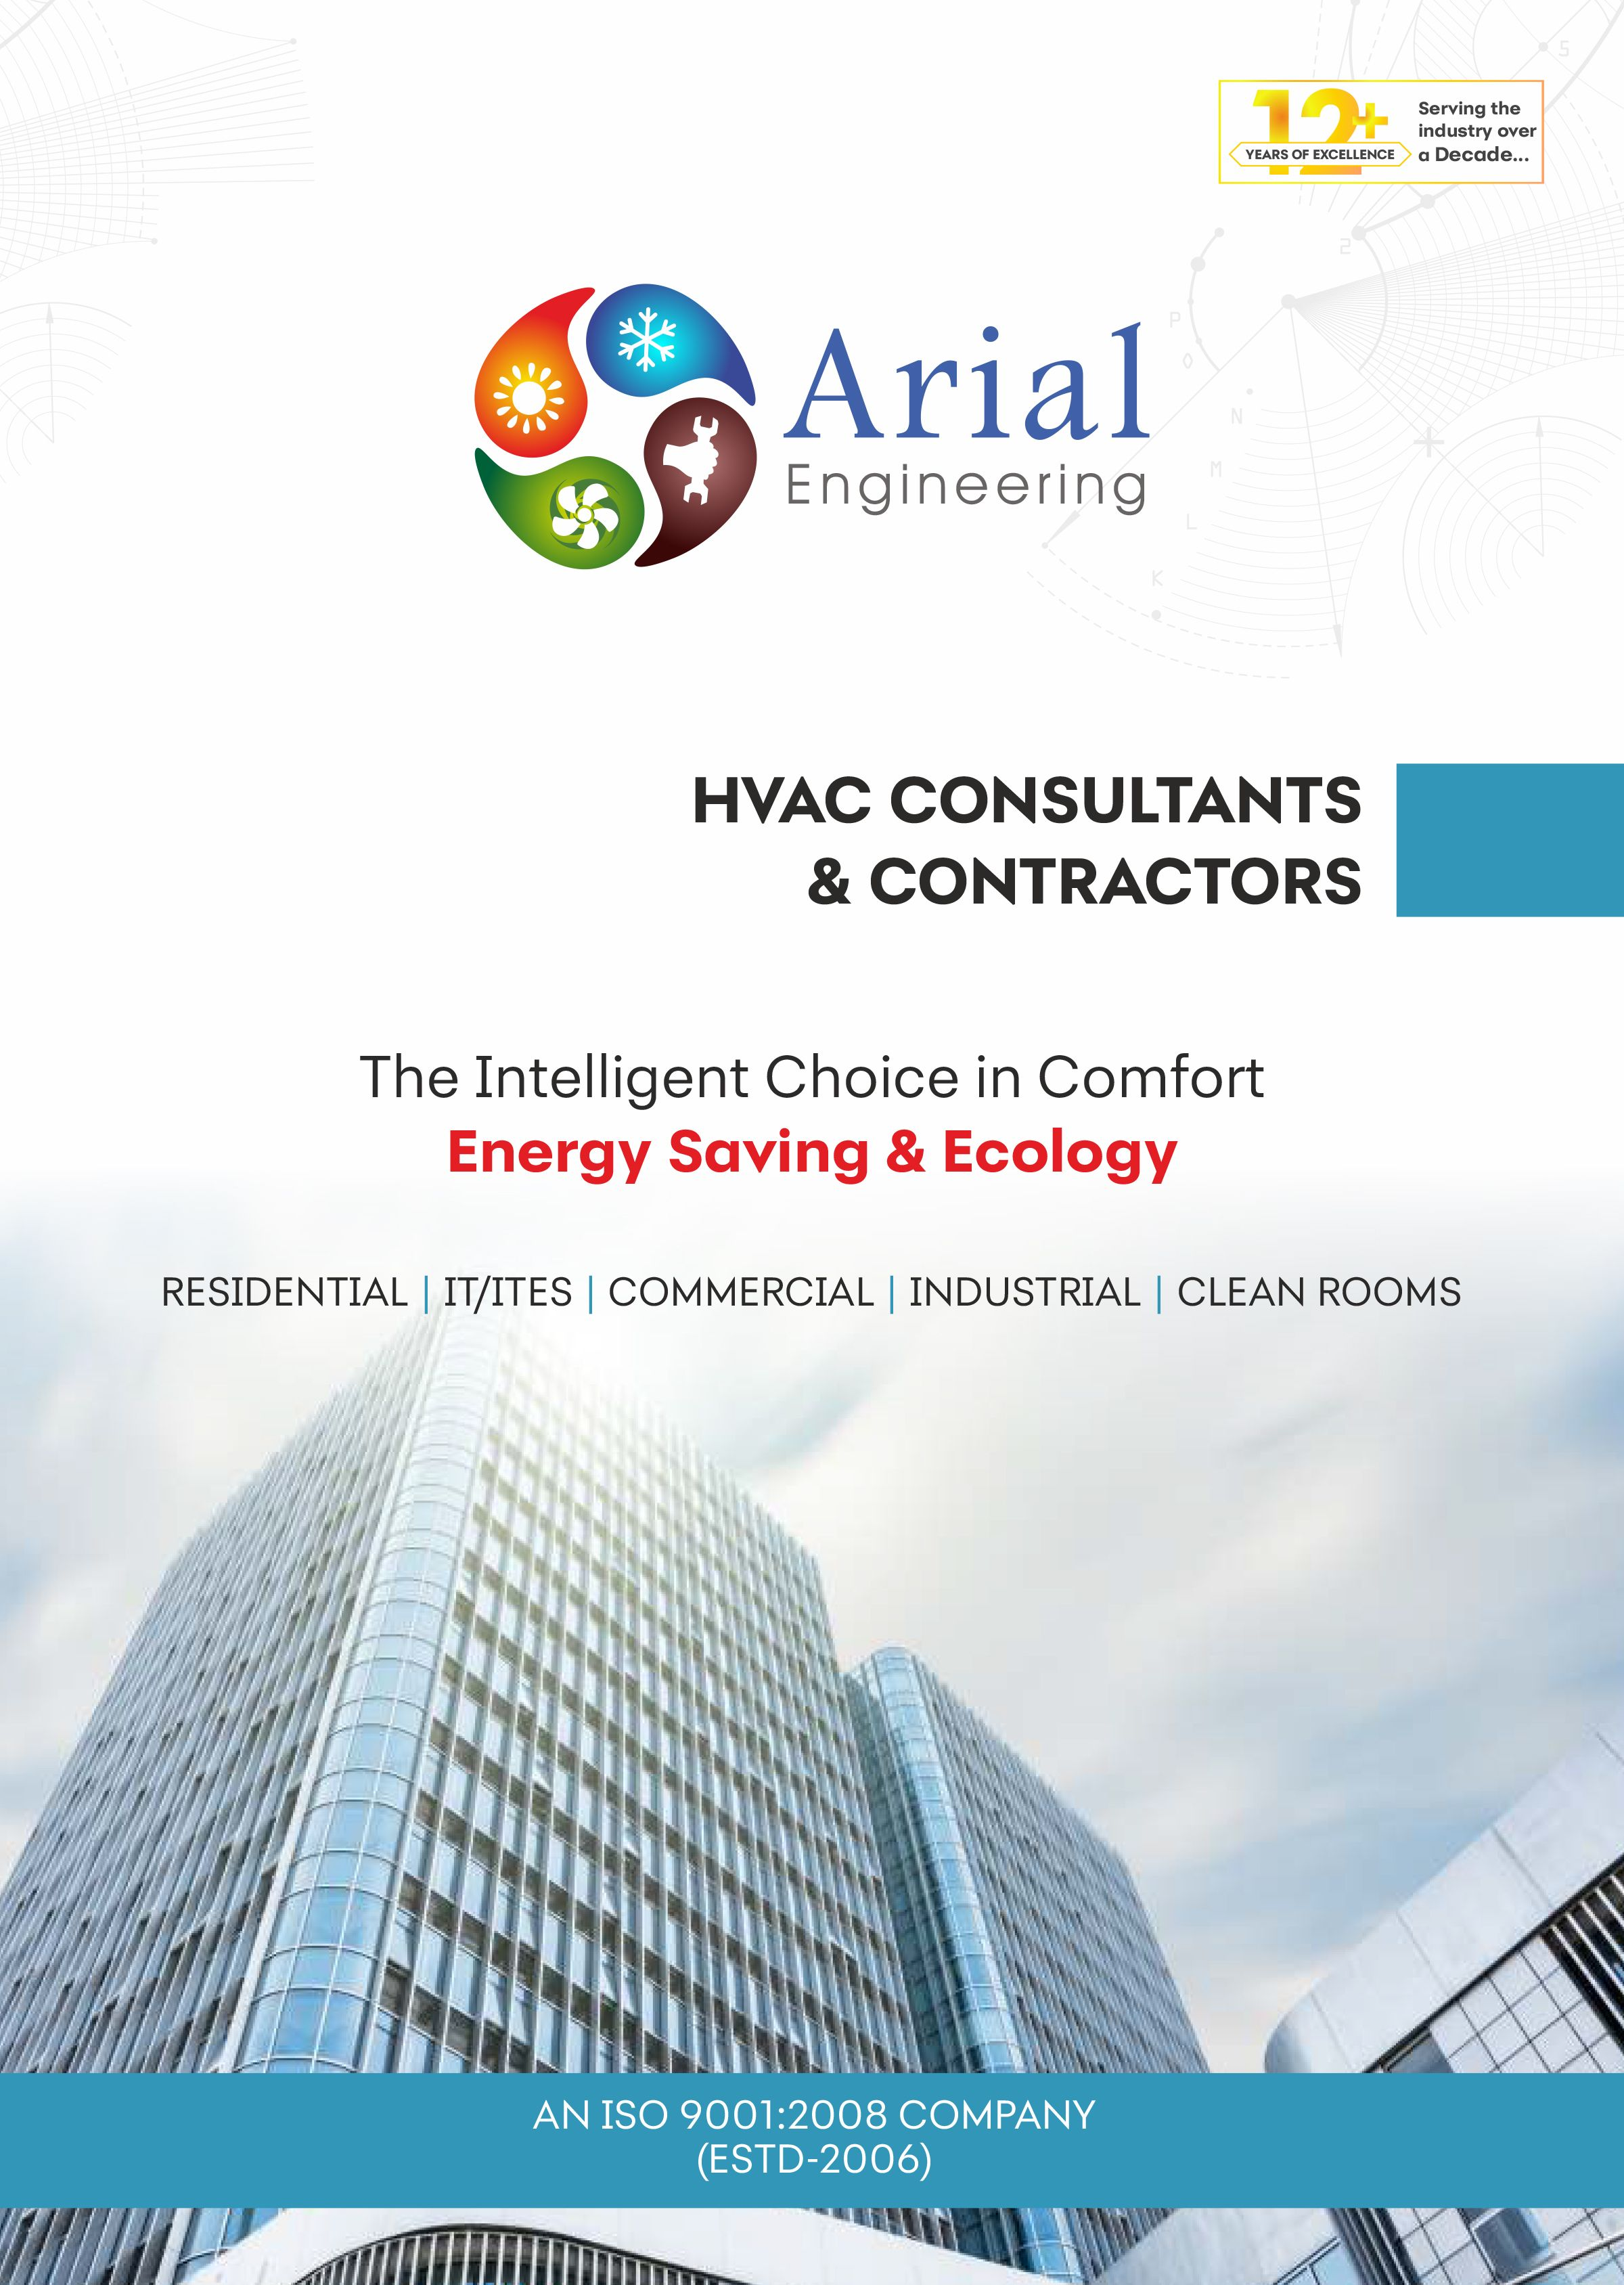 company brochure arial engineering services [ 2400 x 3376 Pixel ]